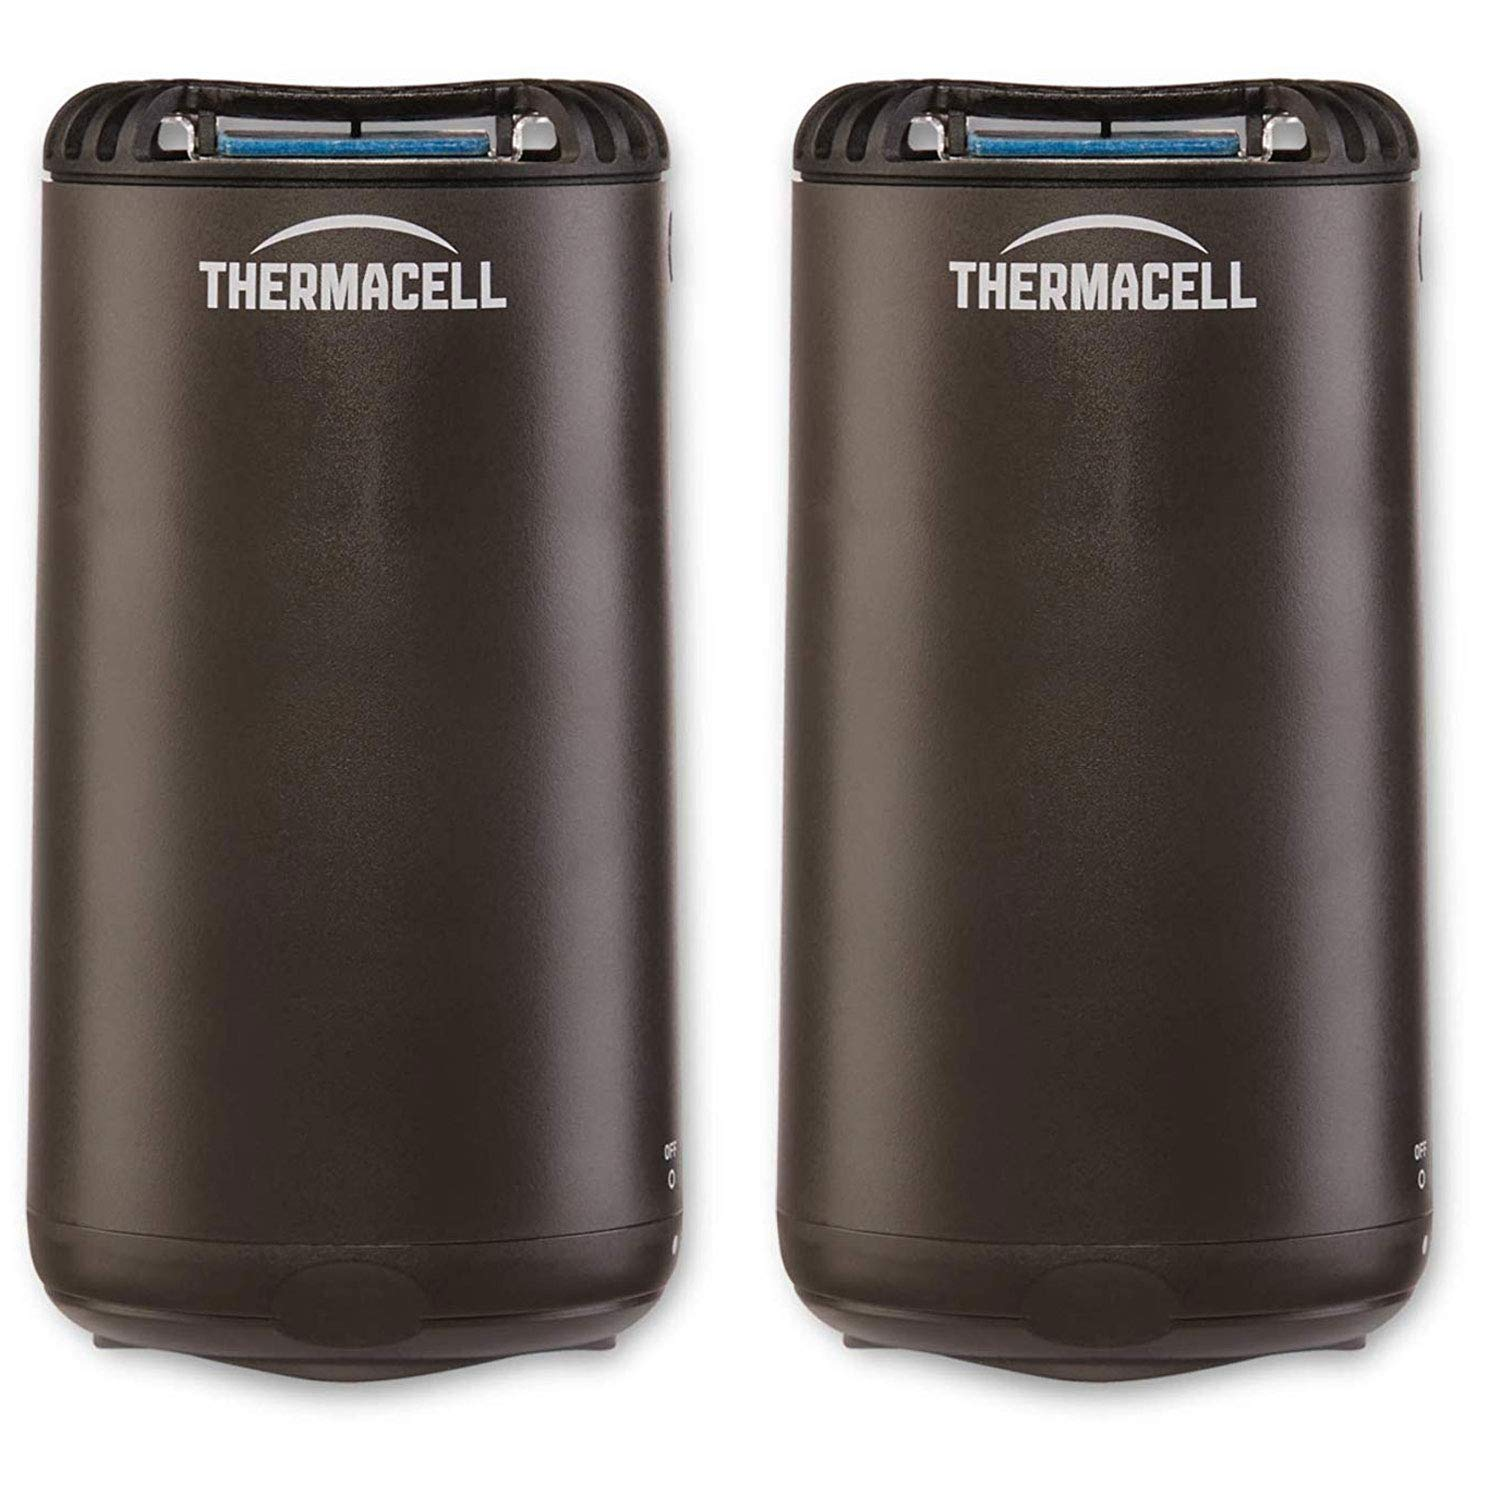 Thermacell Outdoor Patio & Camping Mosquito Insect Repellent, Graphite (2 Pack) by Thermacell